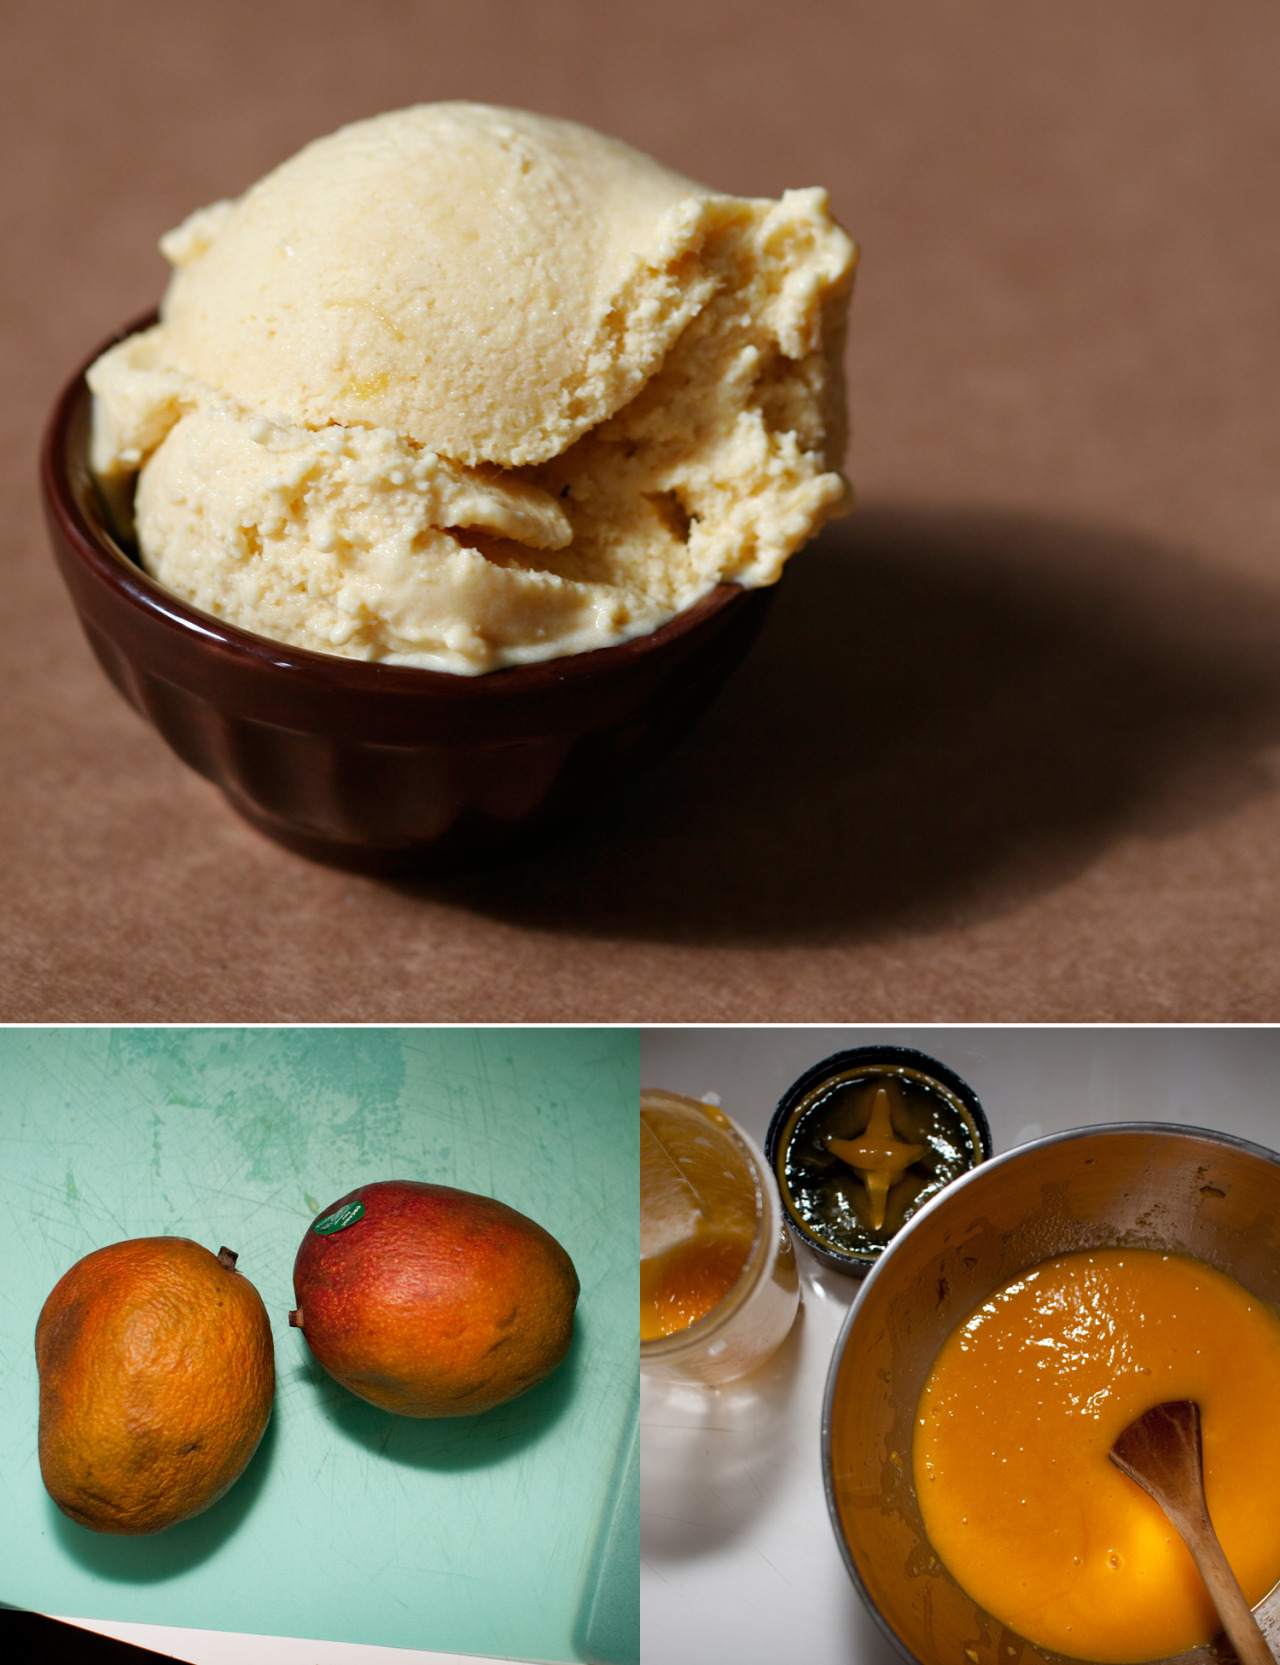 flavor of the day: Mangomango ice cream Okay here we go with our first Tropics in February flavor. Straight up Mango Ice Cream. Not sorbet. Not sherbet. Ice cream. One spoonful and we're back in Fiji, picking mangos from trees and eating them with bare hands. Our mango 'scream is super creamy and delicious and we really want to release a variation of this as a flavor of the month. So the hunt for a fair trade, sustainable, someone-we-can-be proud-to-work-with mango supplier has begun. Tips are welcome.